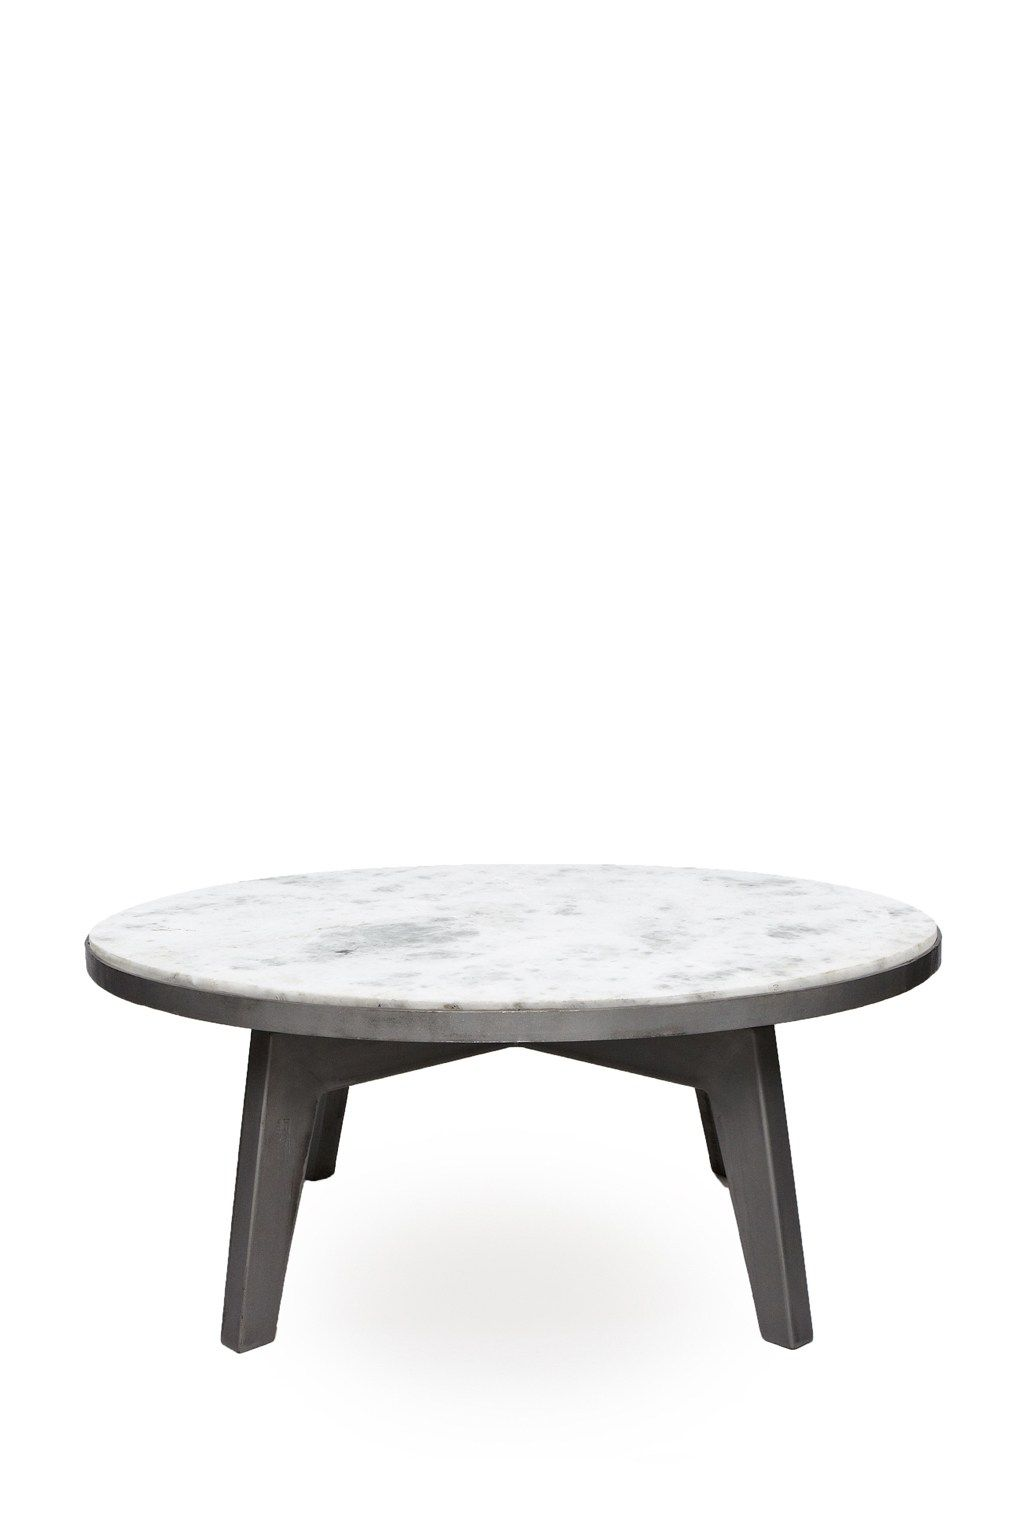 Axis round marble coffee table occasional furniture french axis round marble coffee table occasional furniture french connection geotapseo Image collections